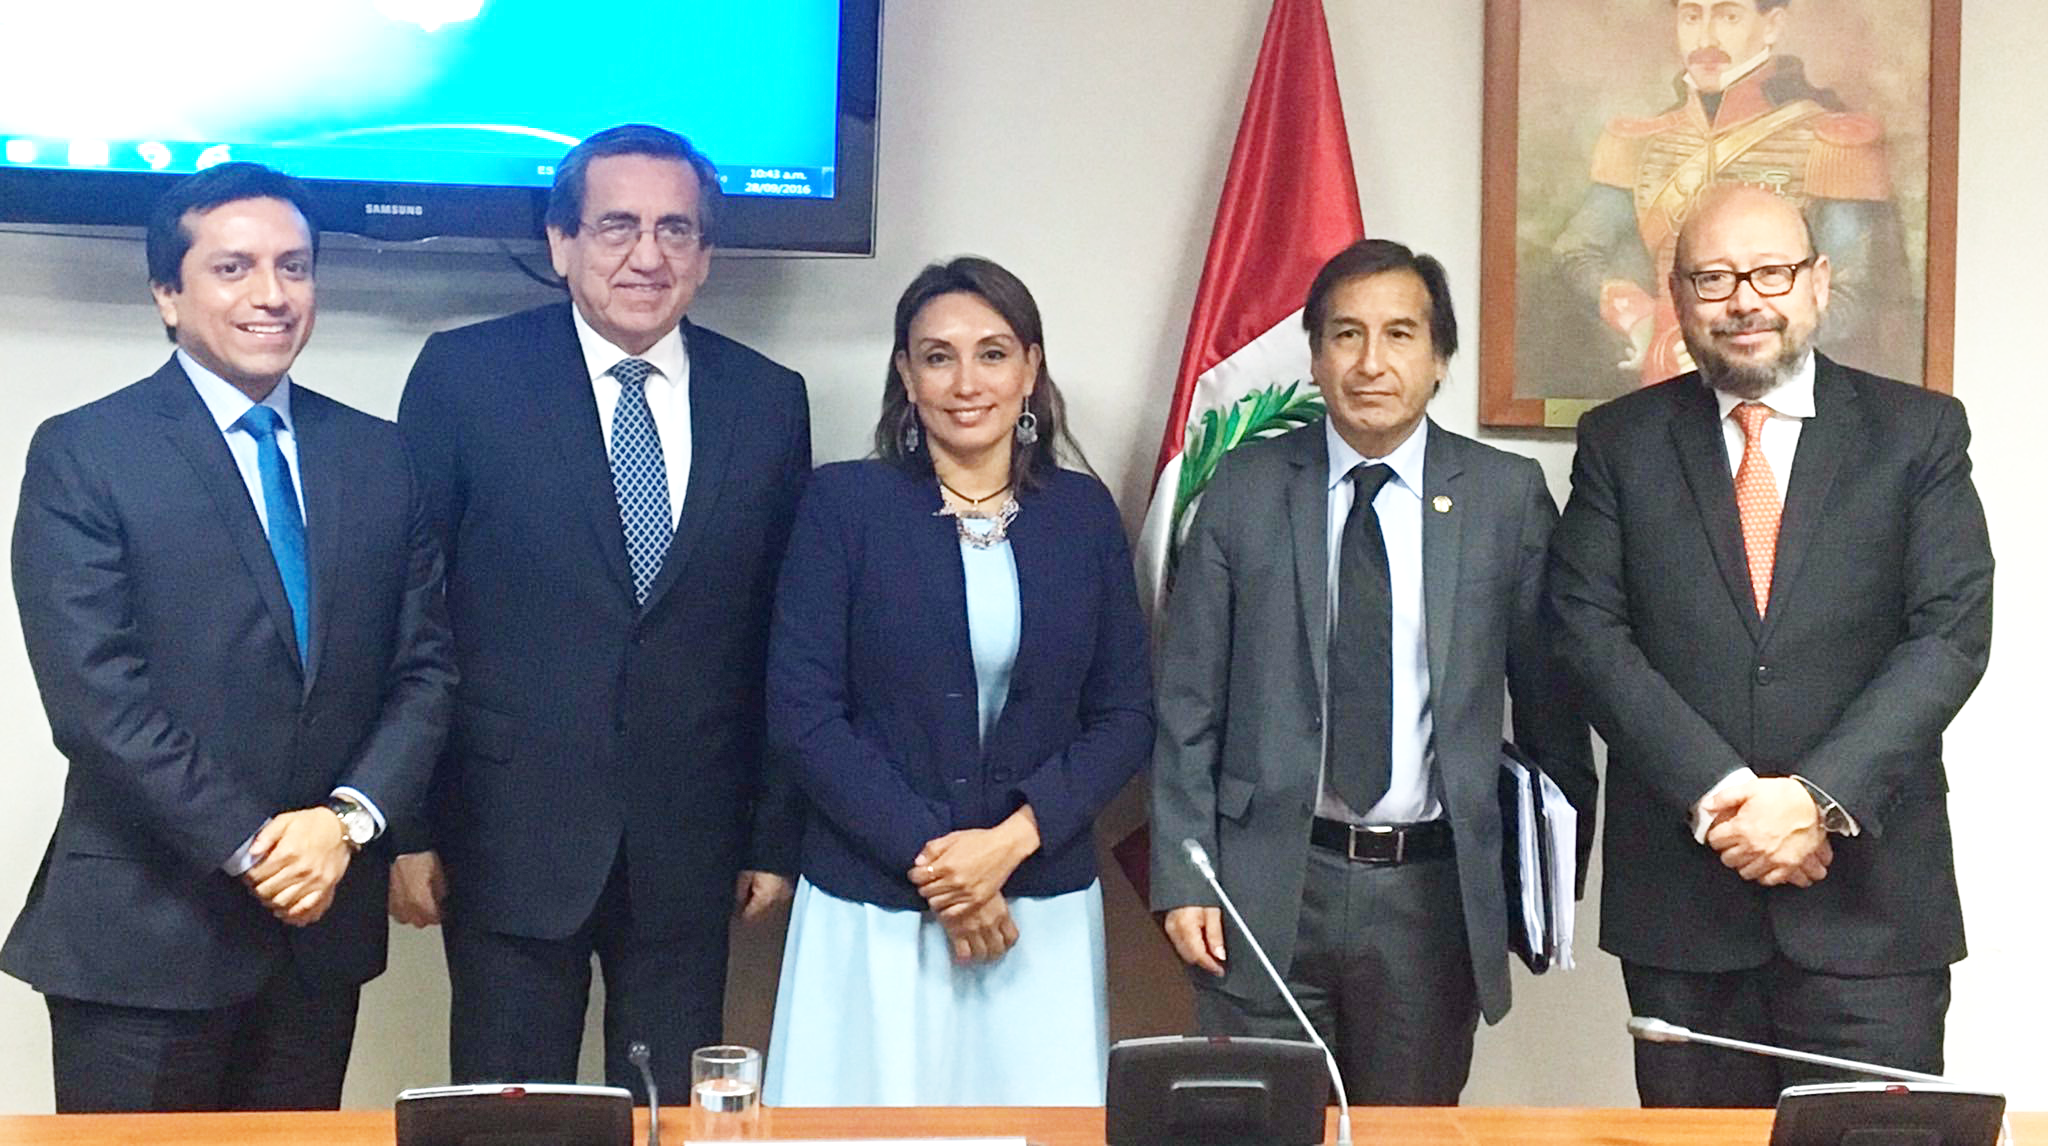 Multi-part working group in charge of elaborating an electoral reform proposal. From left to right: Gilber Violeta (Peruanos Por el Kambio); Jorge del Castillo (Partido Aprista Peruano);Patricia Donayre (delegate of Fuerza Popular and President of the working group); Mario Canzio (Frente Amplio); and Percy Medina, Head of Mission, International IDEA Peru. Photo credit: International IDEA